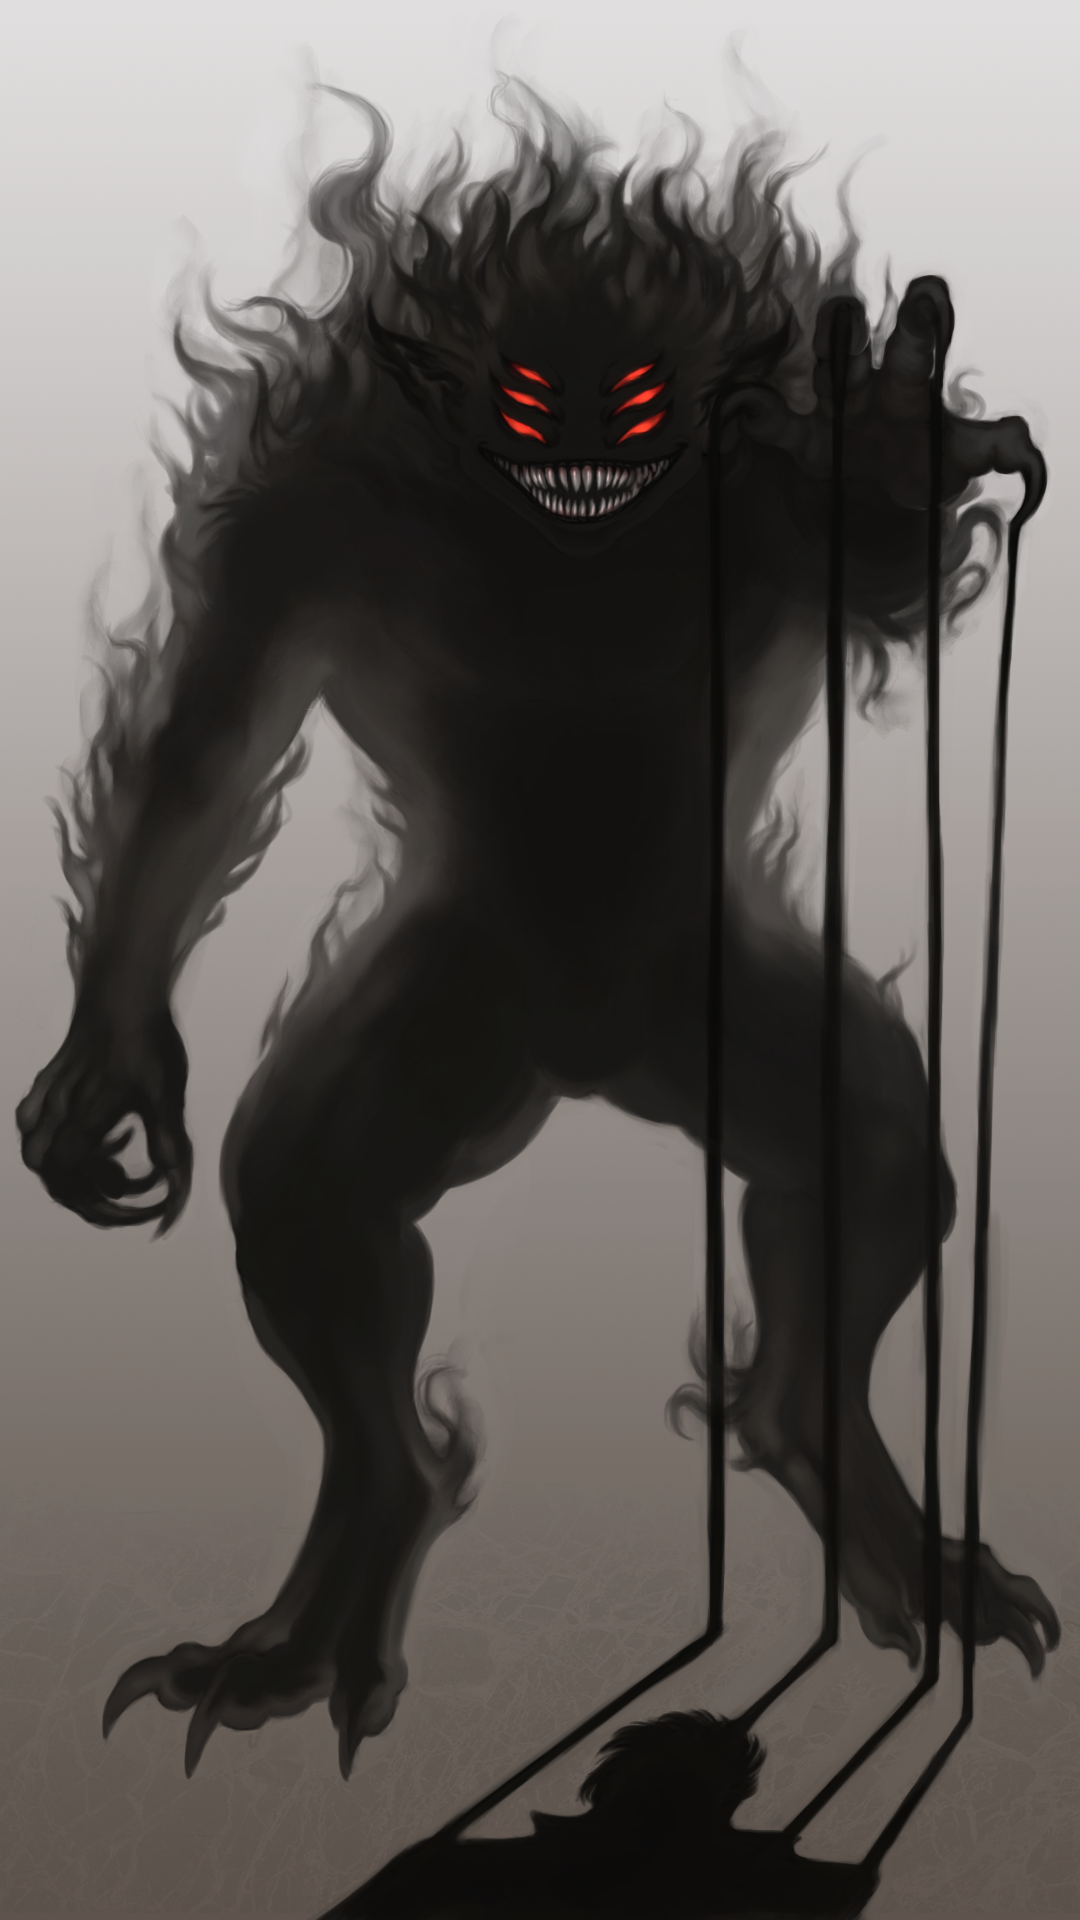 shadow monster mythology google search into a blackened shroud of